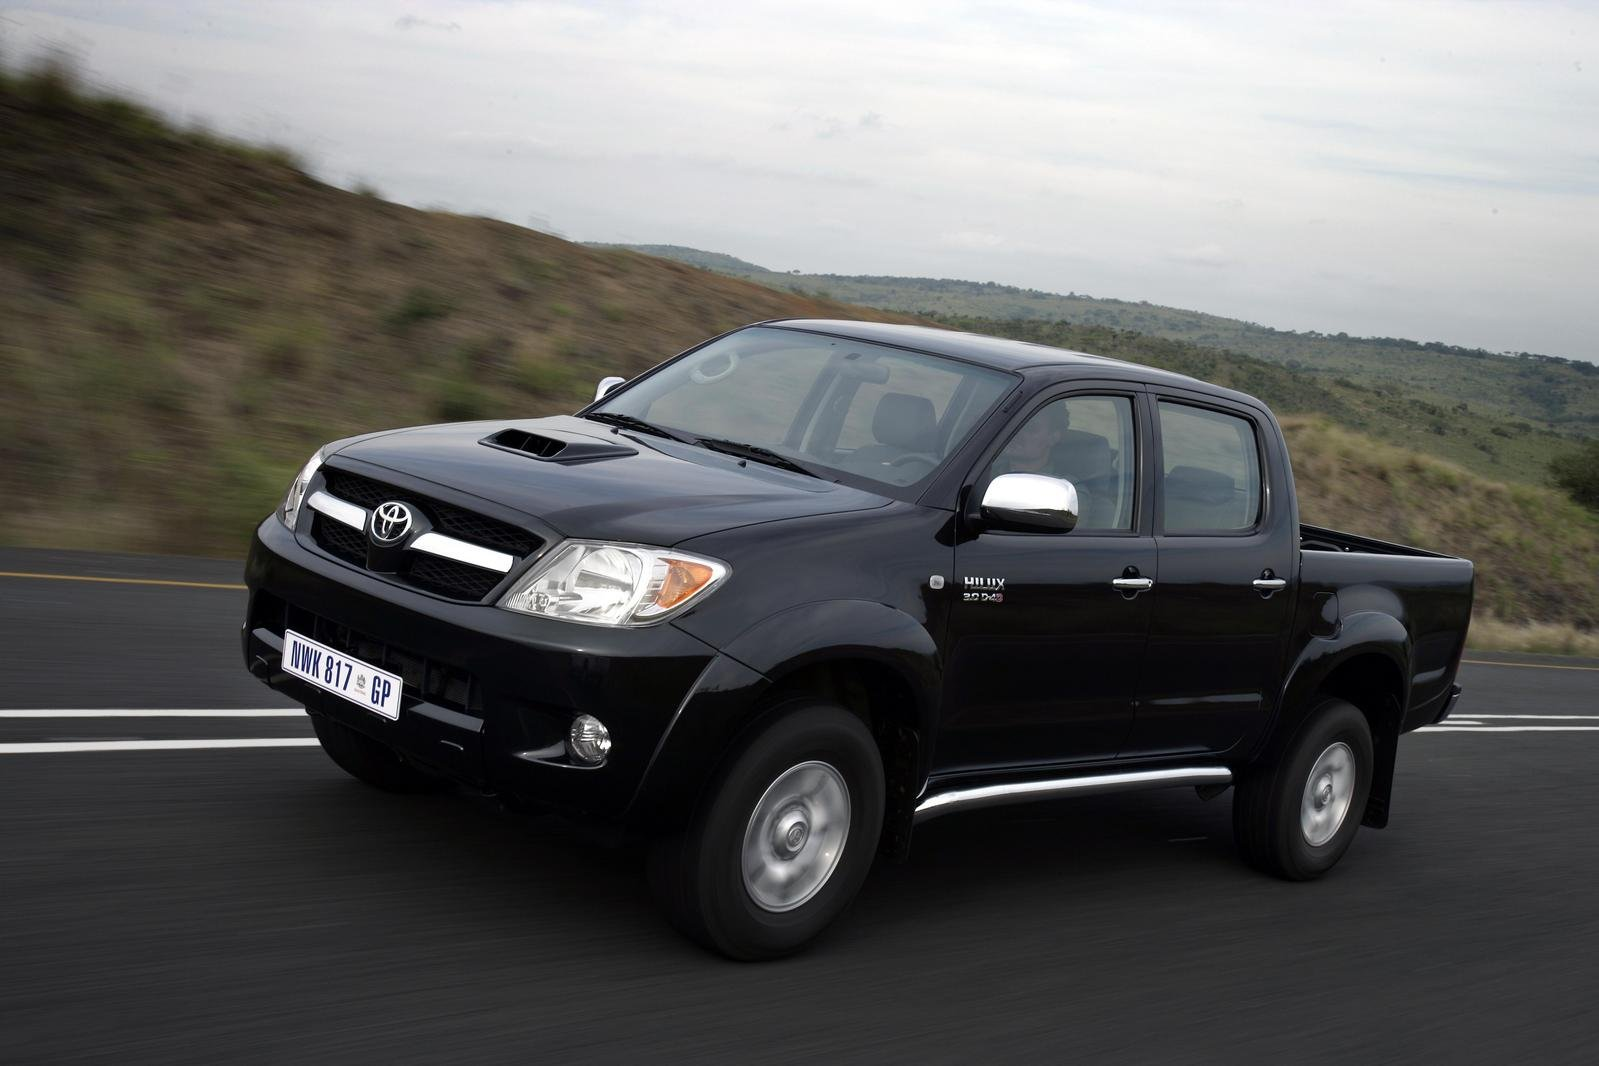 2007 Toyota Hilux Picture 157994 Car Review Top Speed